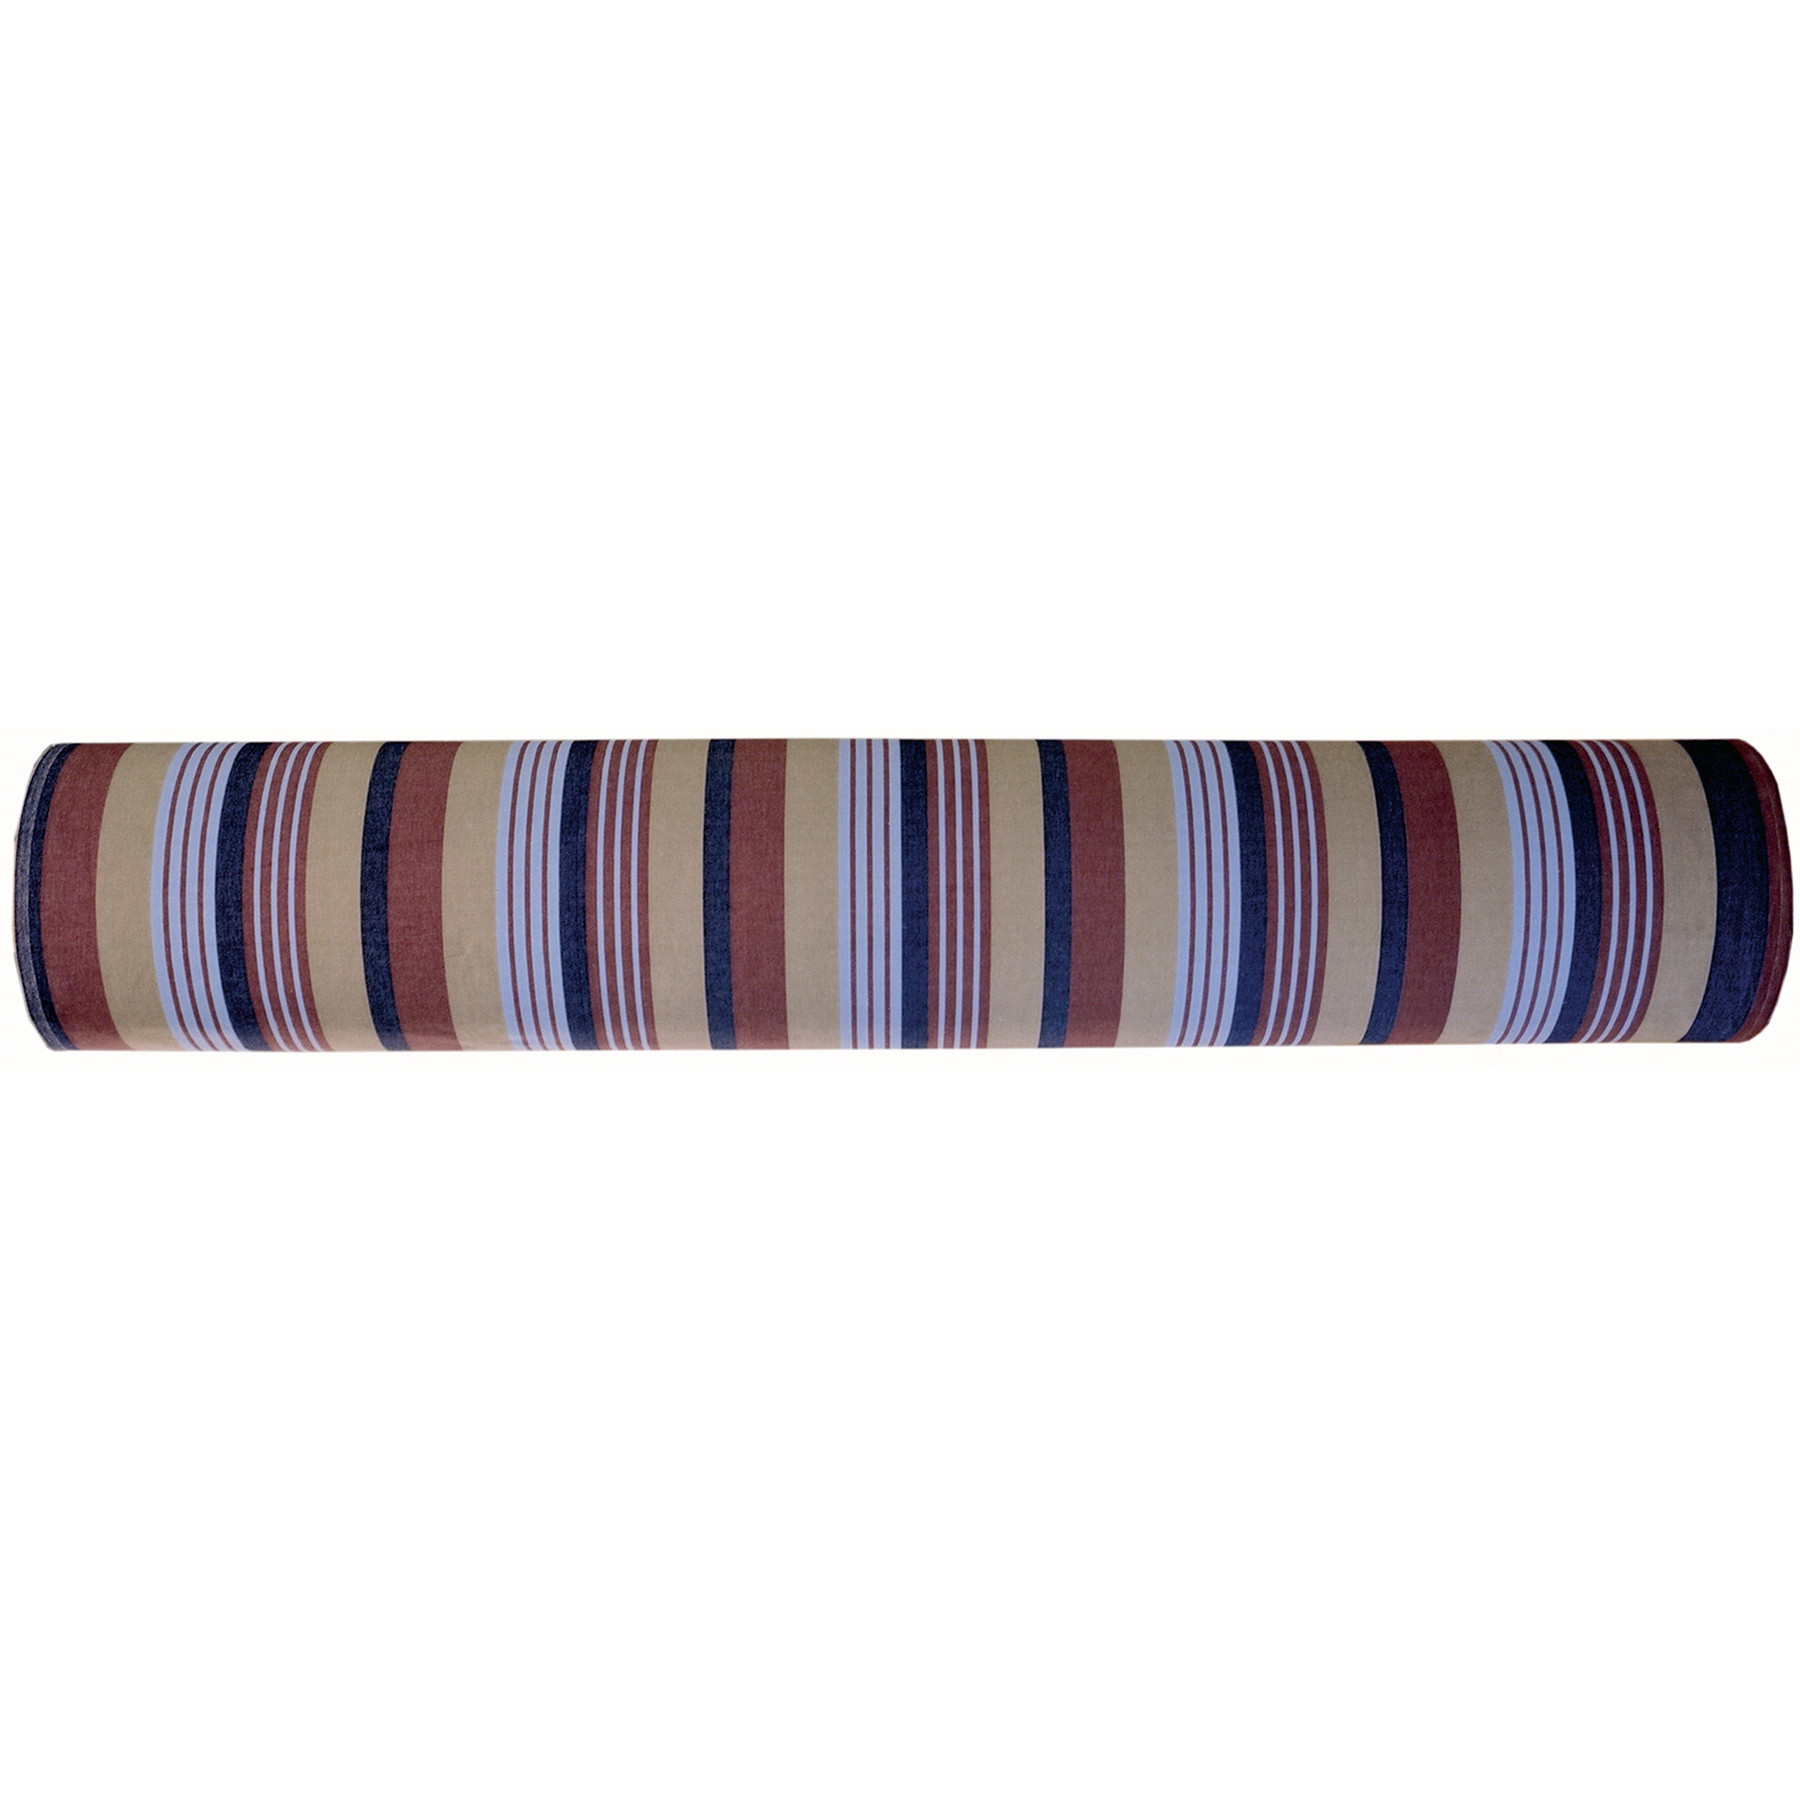 Fabric by the meter CABINE 180cm